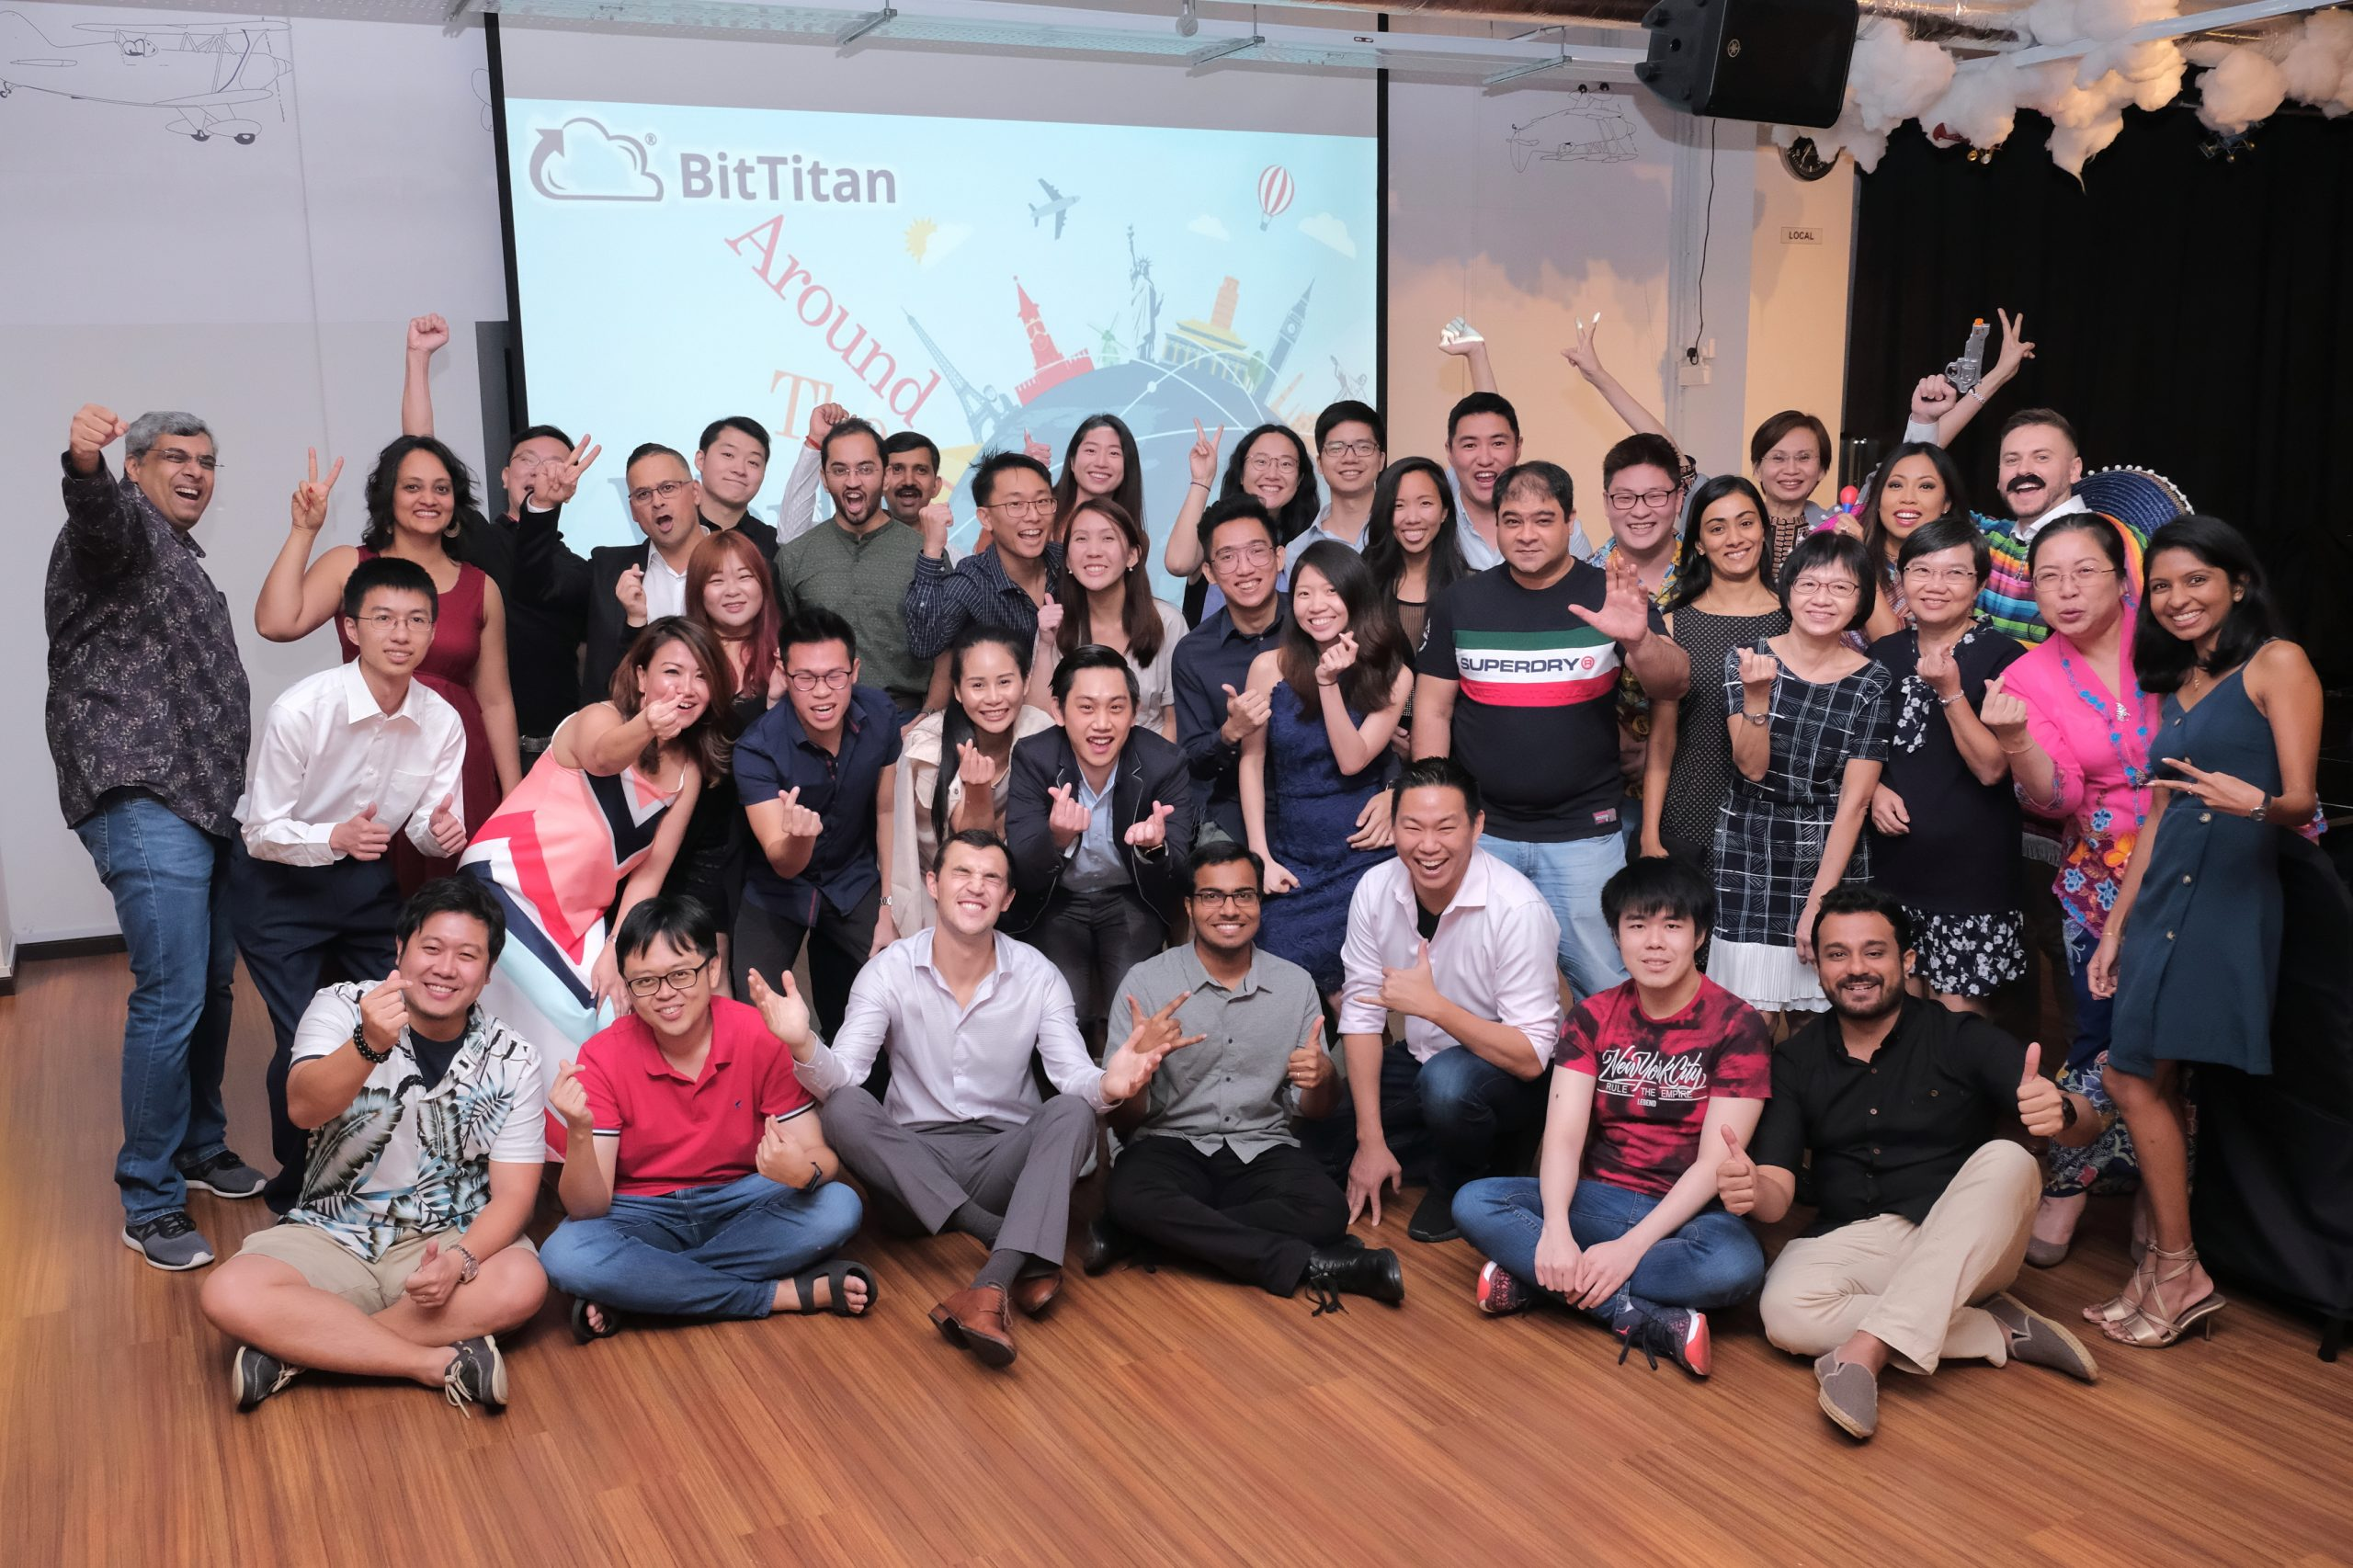 BitTitan SG Pte Ltd Great Place to Work-Certified